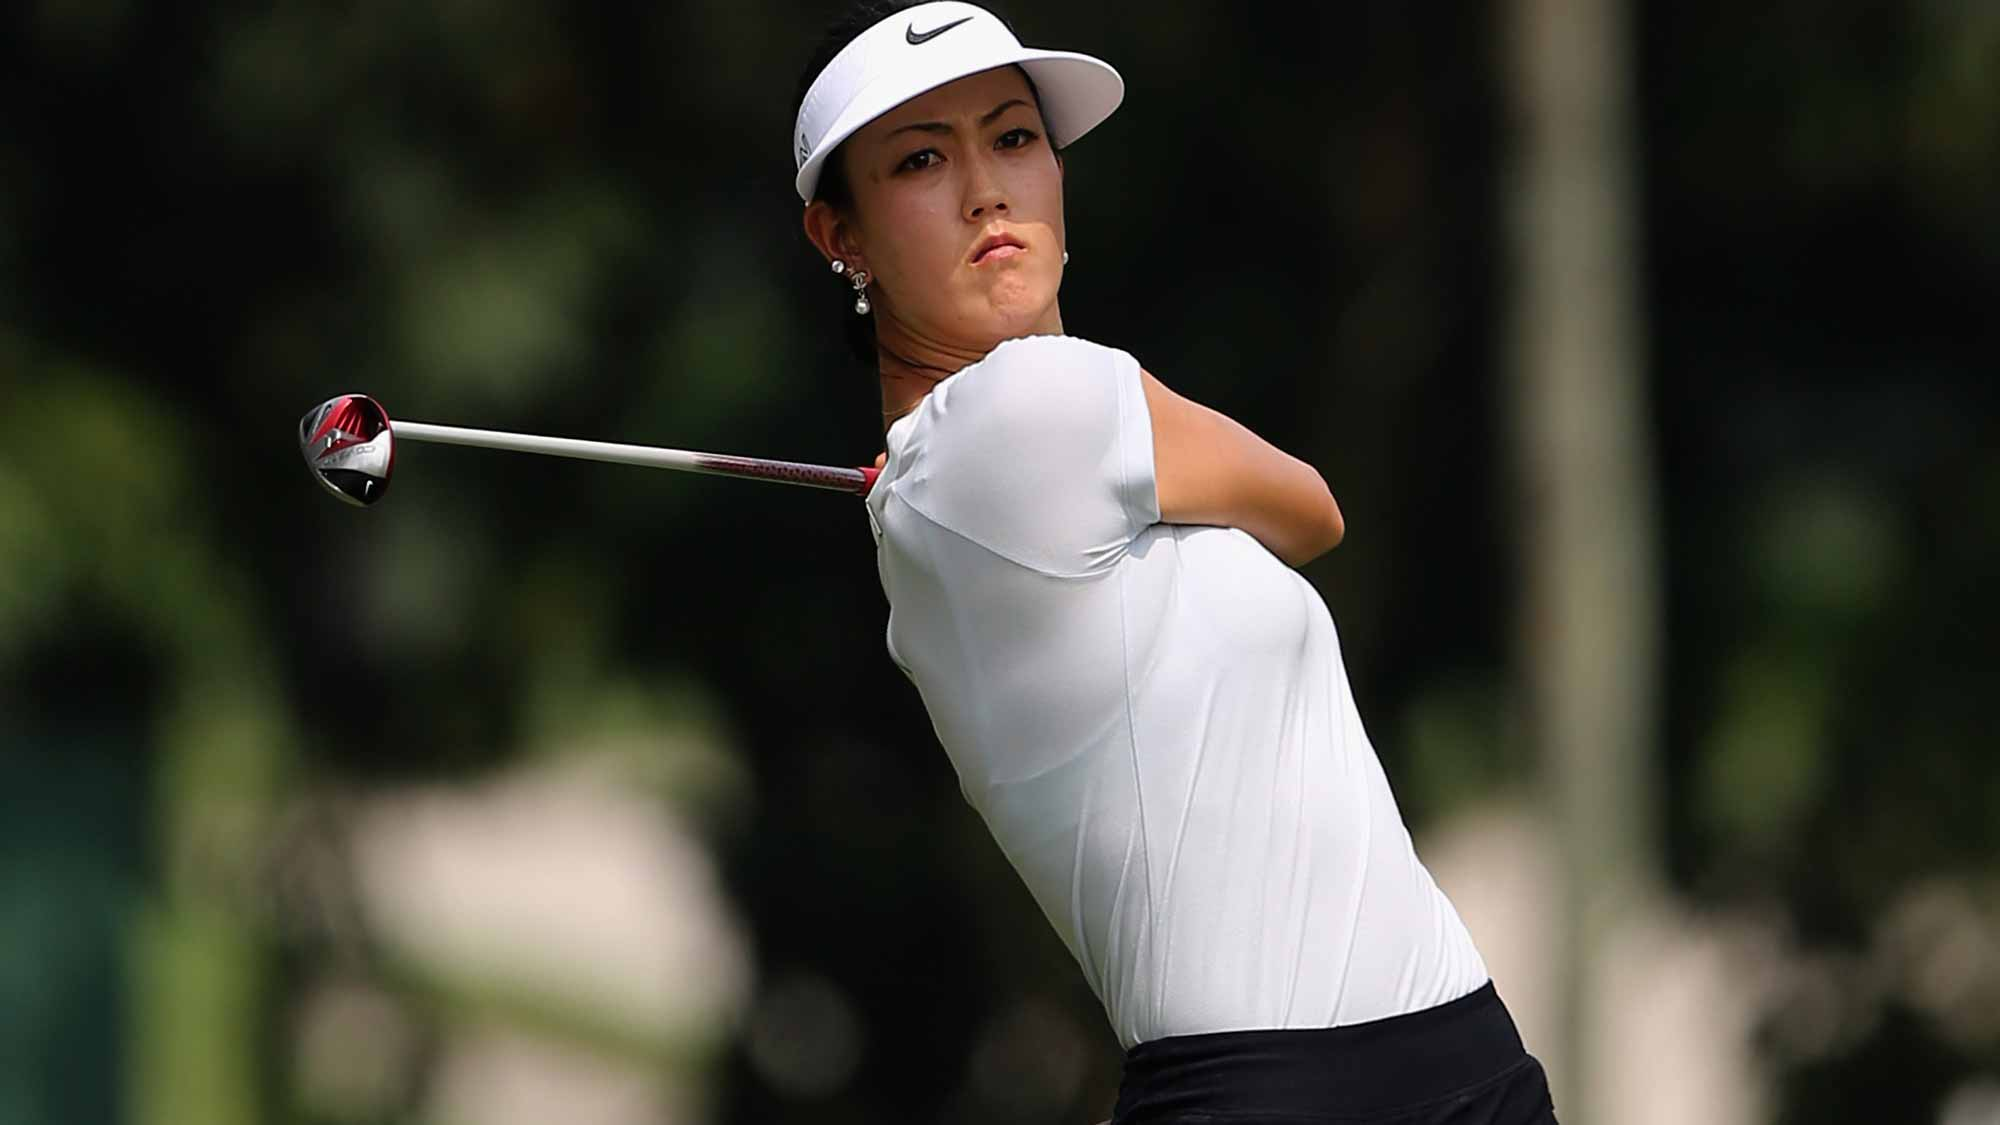 Michelle Wie of USA plays her 2nd shot on the 6th hole during round one of the Sime Darby LPGA Tour at Kuala Lumpur Golf & Country Club